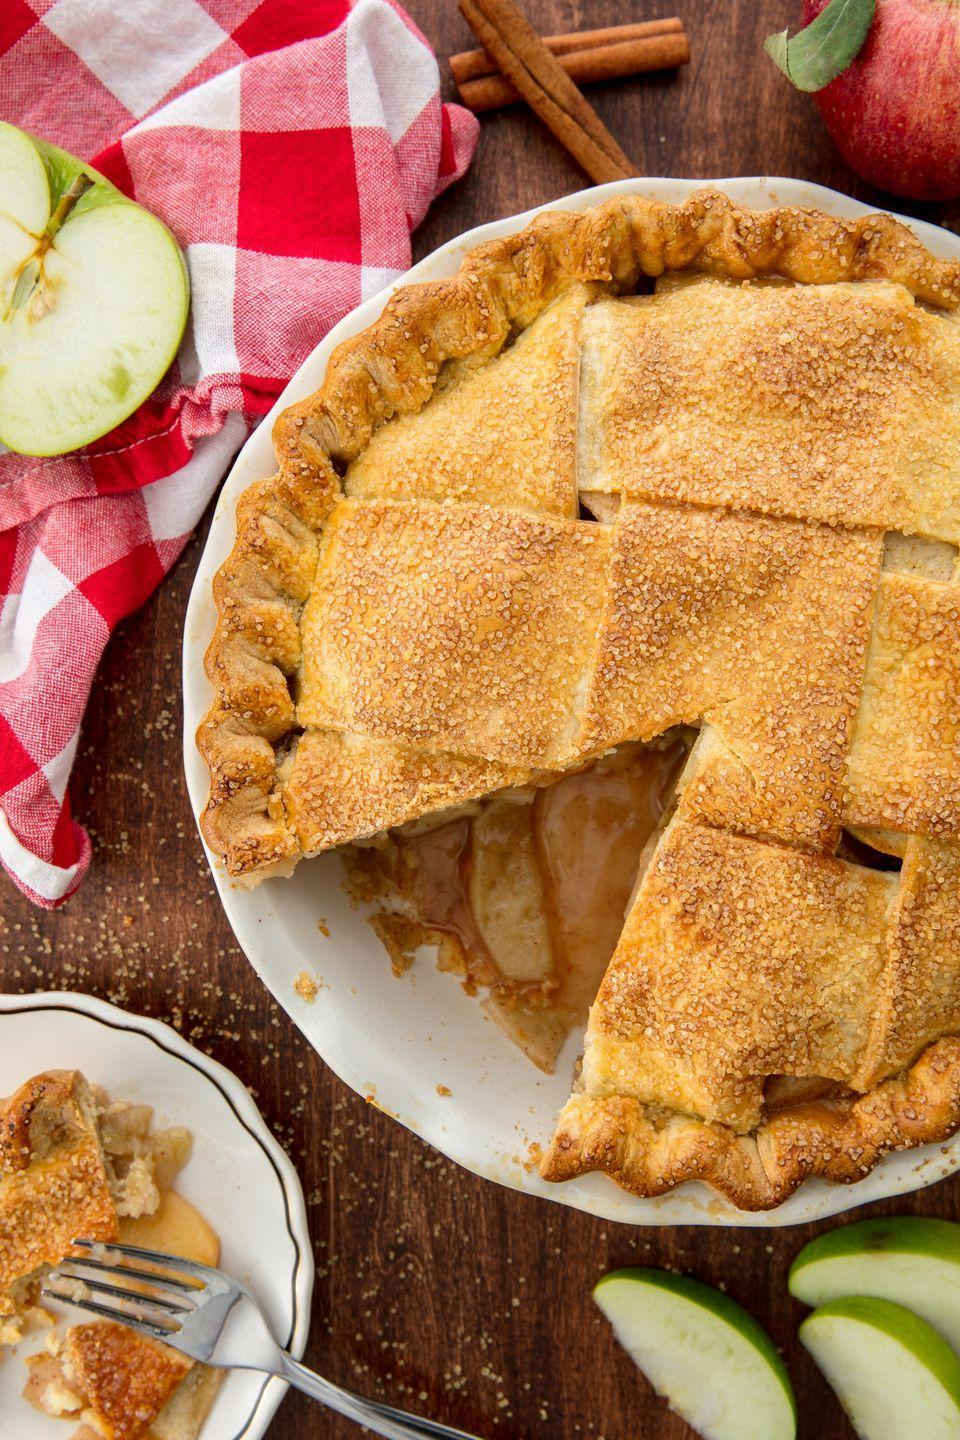 """<p>Every fall, we turn to this recipe because we think it's, well, pretty perfect. </p><p>Get the recipe from <a href=""""https://www.delish.com/cooking/recipe-ideas/recipes/a55693/best-homemade-apple-pie-recipe-from-scratch/"""" rel=""""nofollow noopener"""" target=""""_blank"""" data-ylk=""""slk:Delish"""" class=""""link rapid-noclick-resp"""">Delish</a>.</p>"""